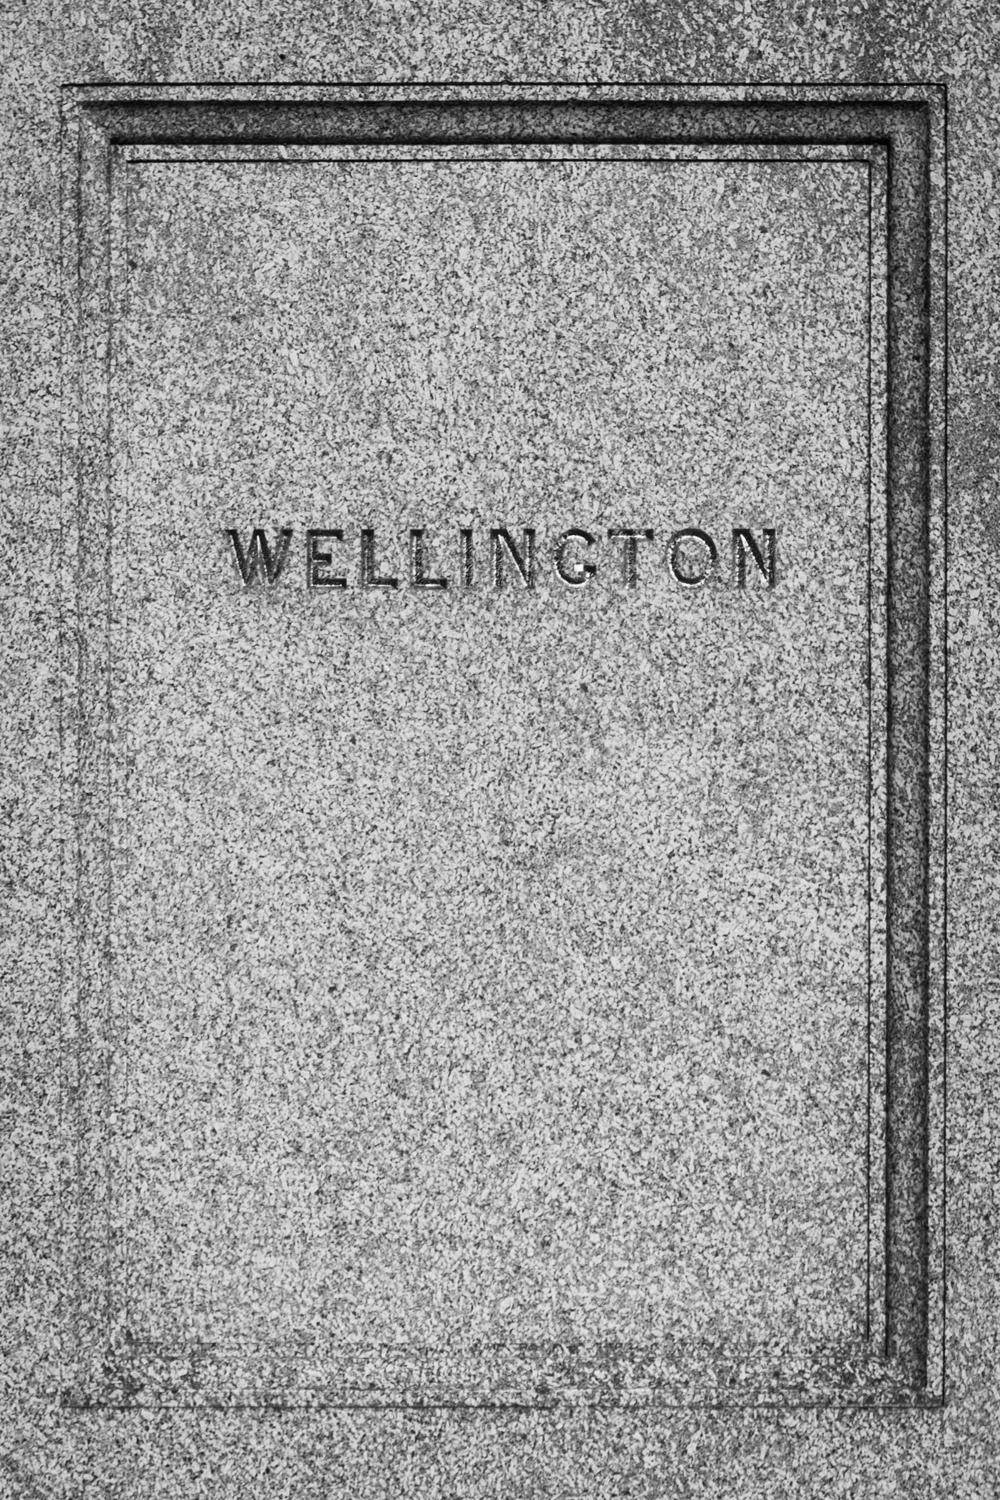 Wellington Memorial - black and white architecture photographer in Hampshire by Rick McEvoy